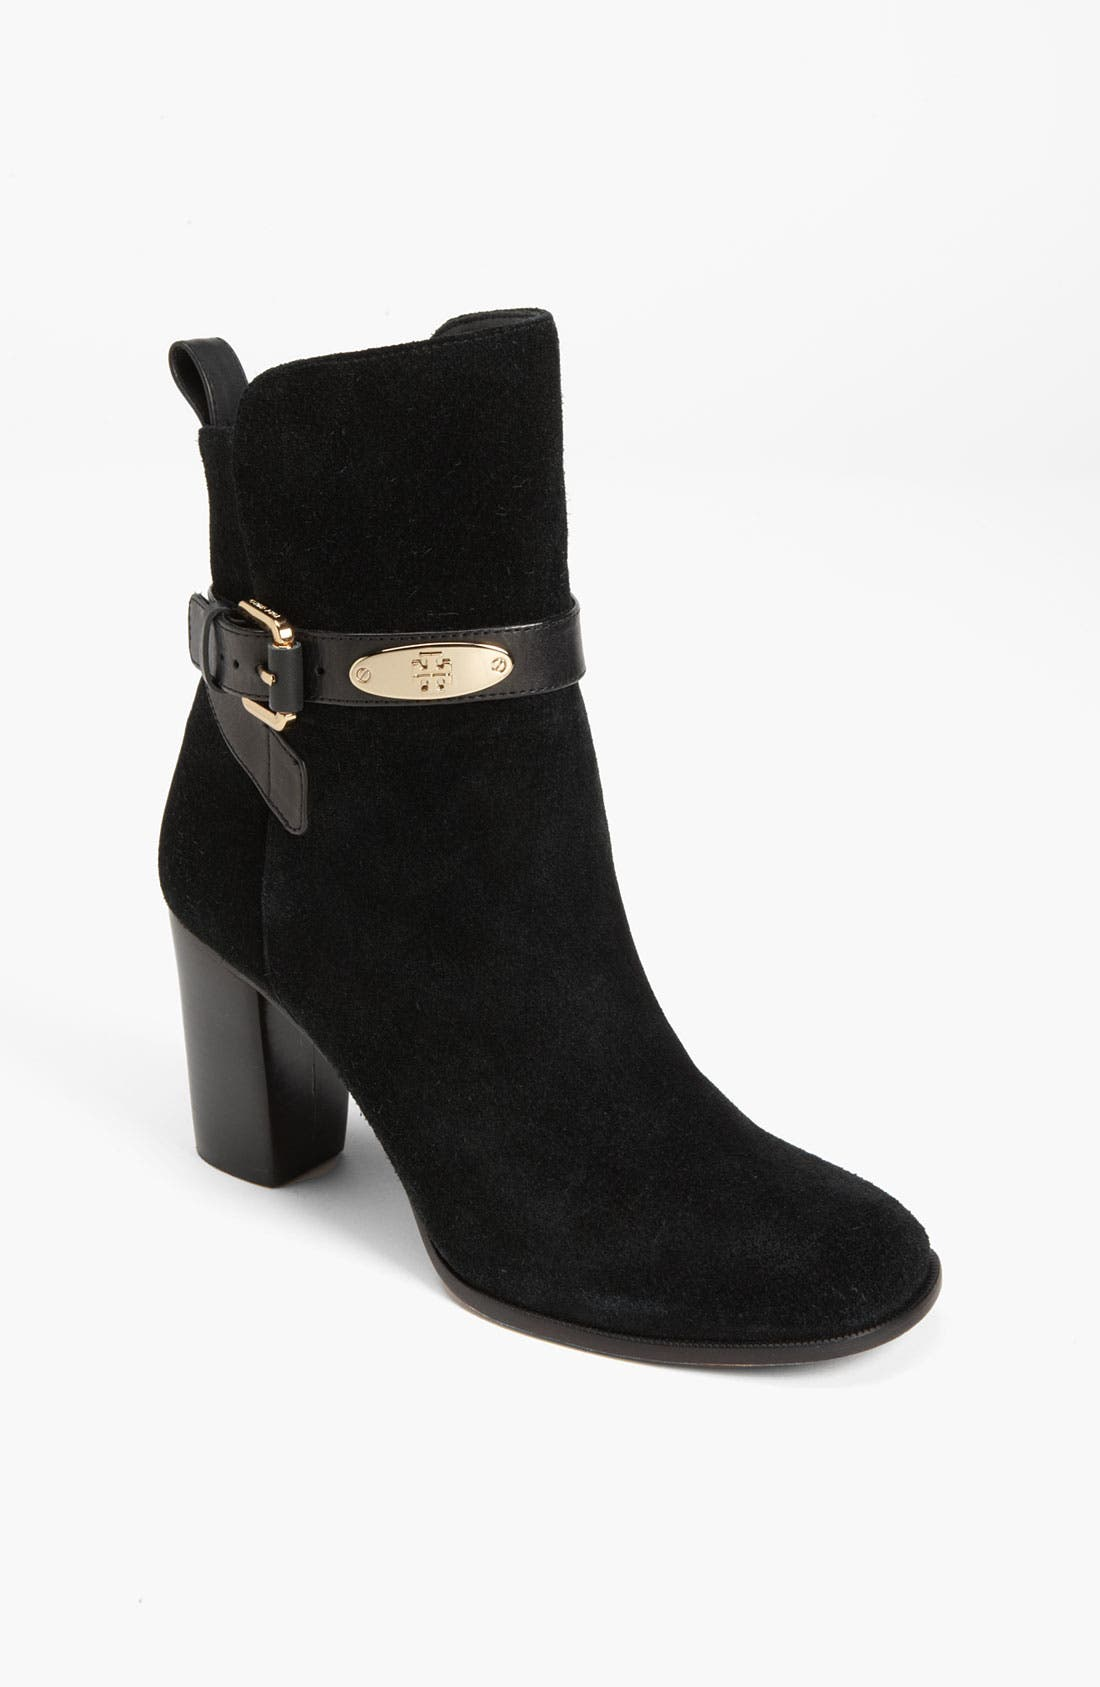 Alternate Image 1 Selected - Tory Burch 'Robynne' Bootie